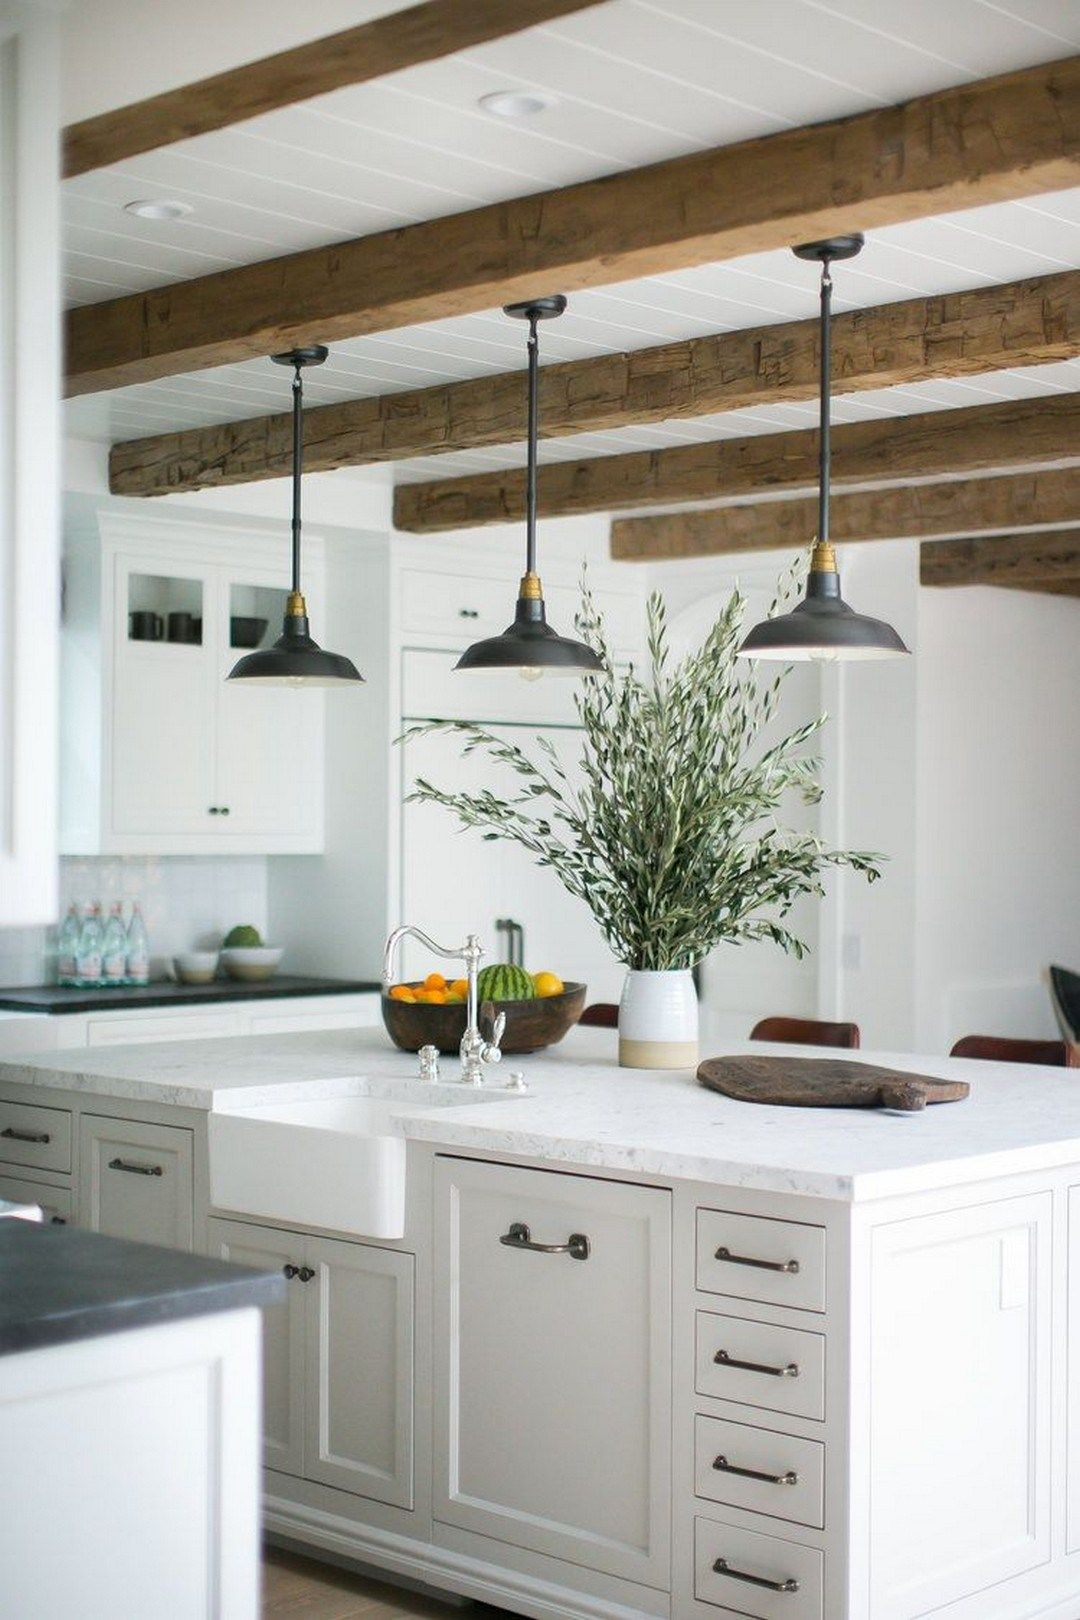 Ultimate Kitchen Island Design Ideas 10 With Images Kitchen Island Decor Modern Farmhouse Kitchens Home Kitchens